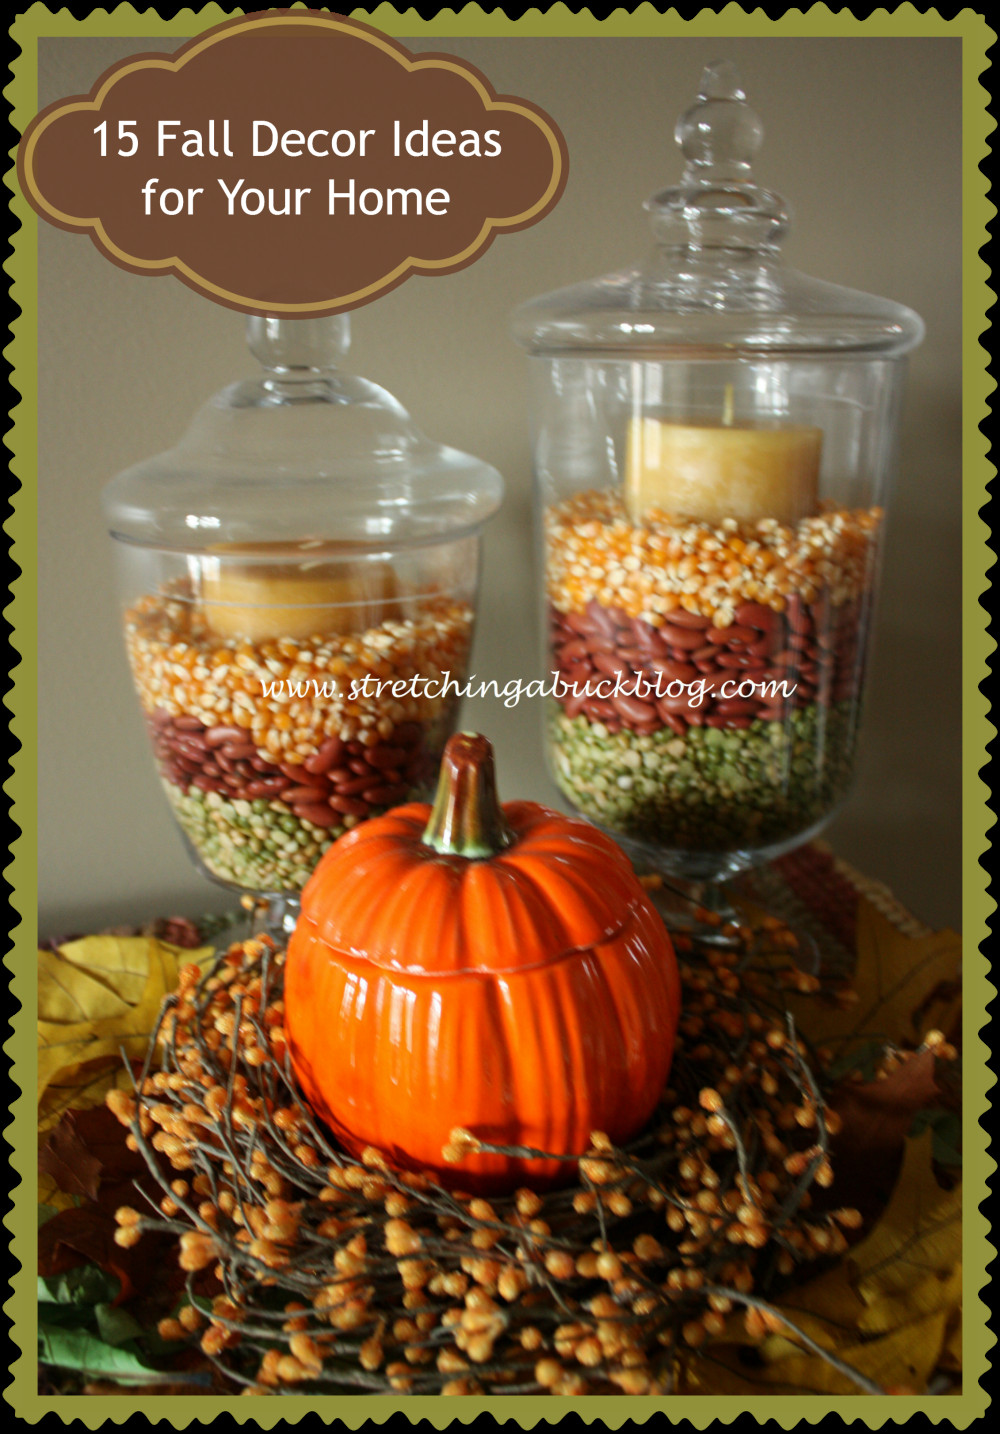 At Home Fall Decor  15 Fall Decor Ideas for Your Home Stretching a Buck